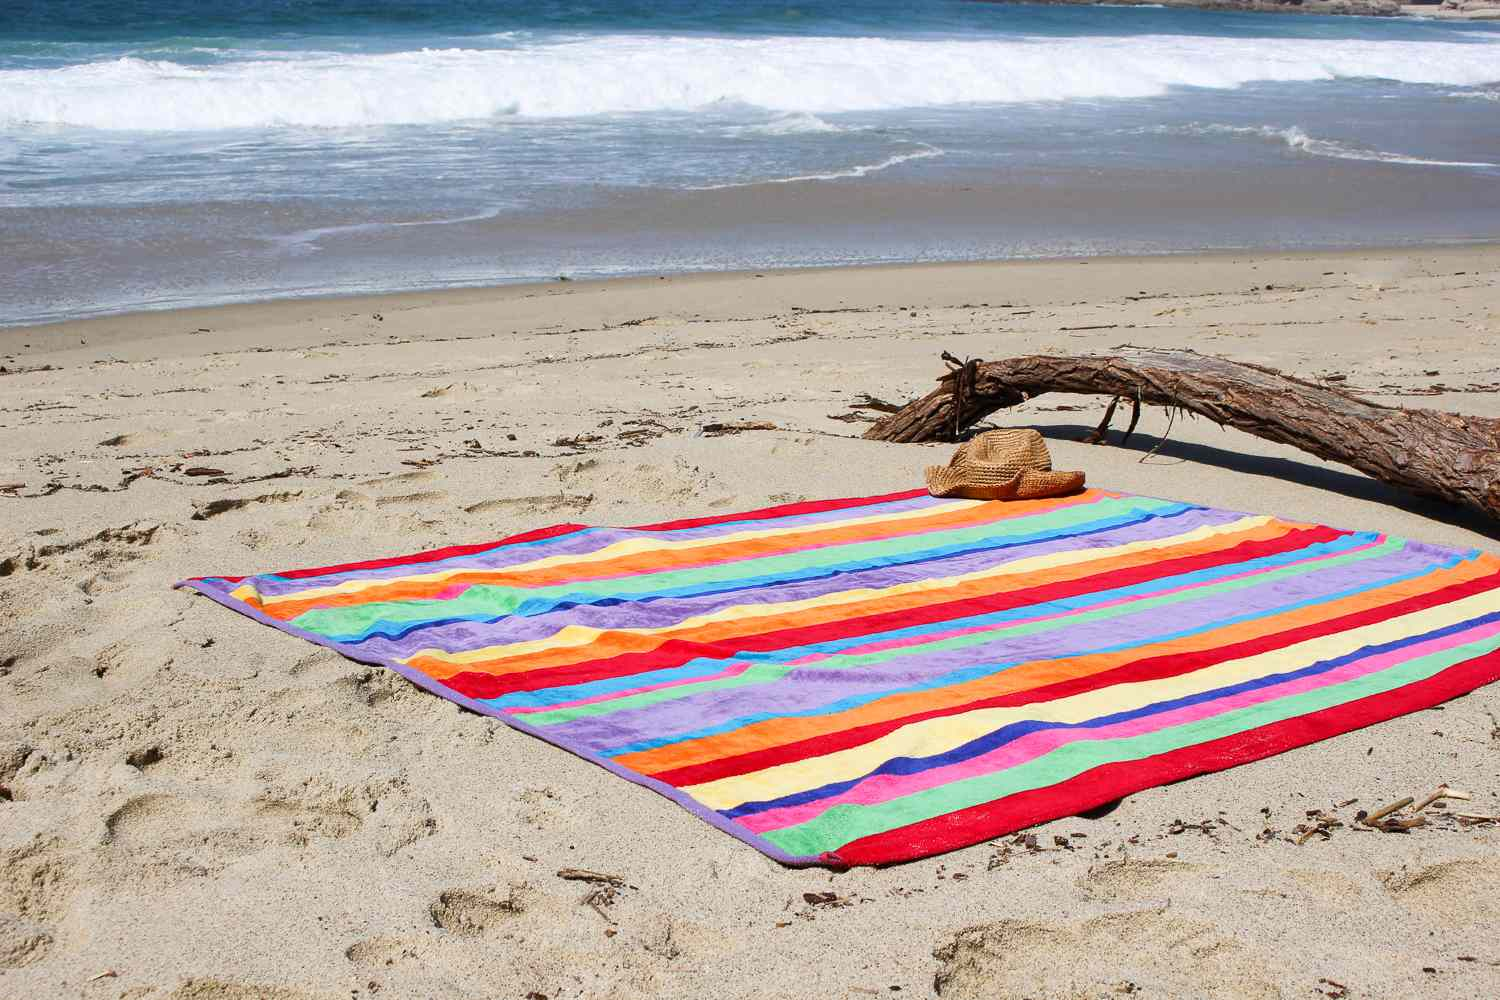 Cotton Craft Luxury Beach Towel Review: Colorful And Oversized